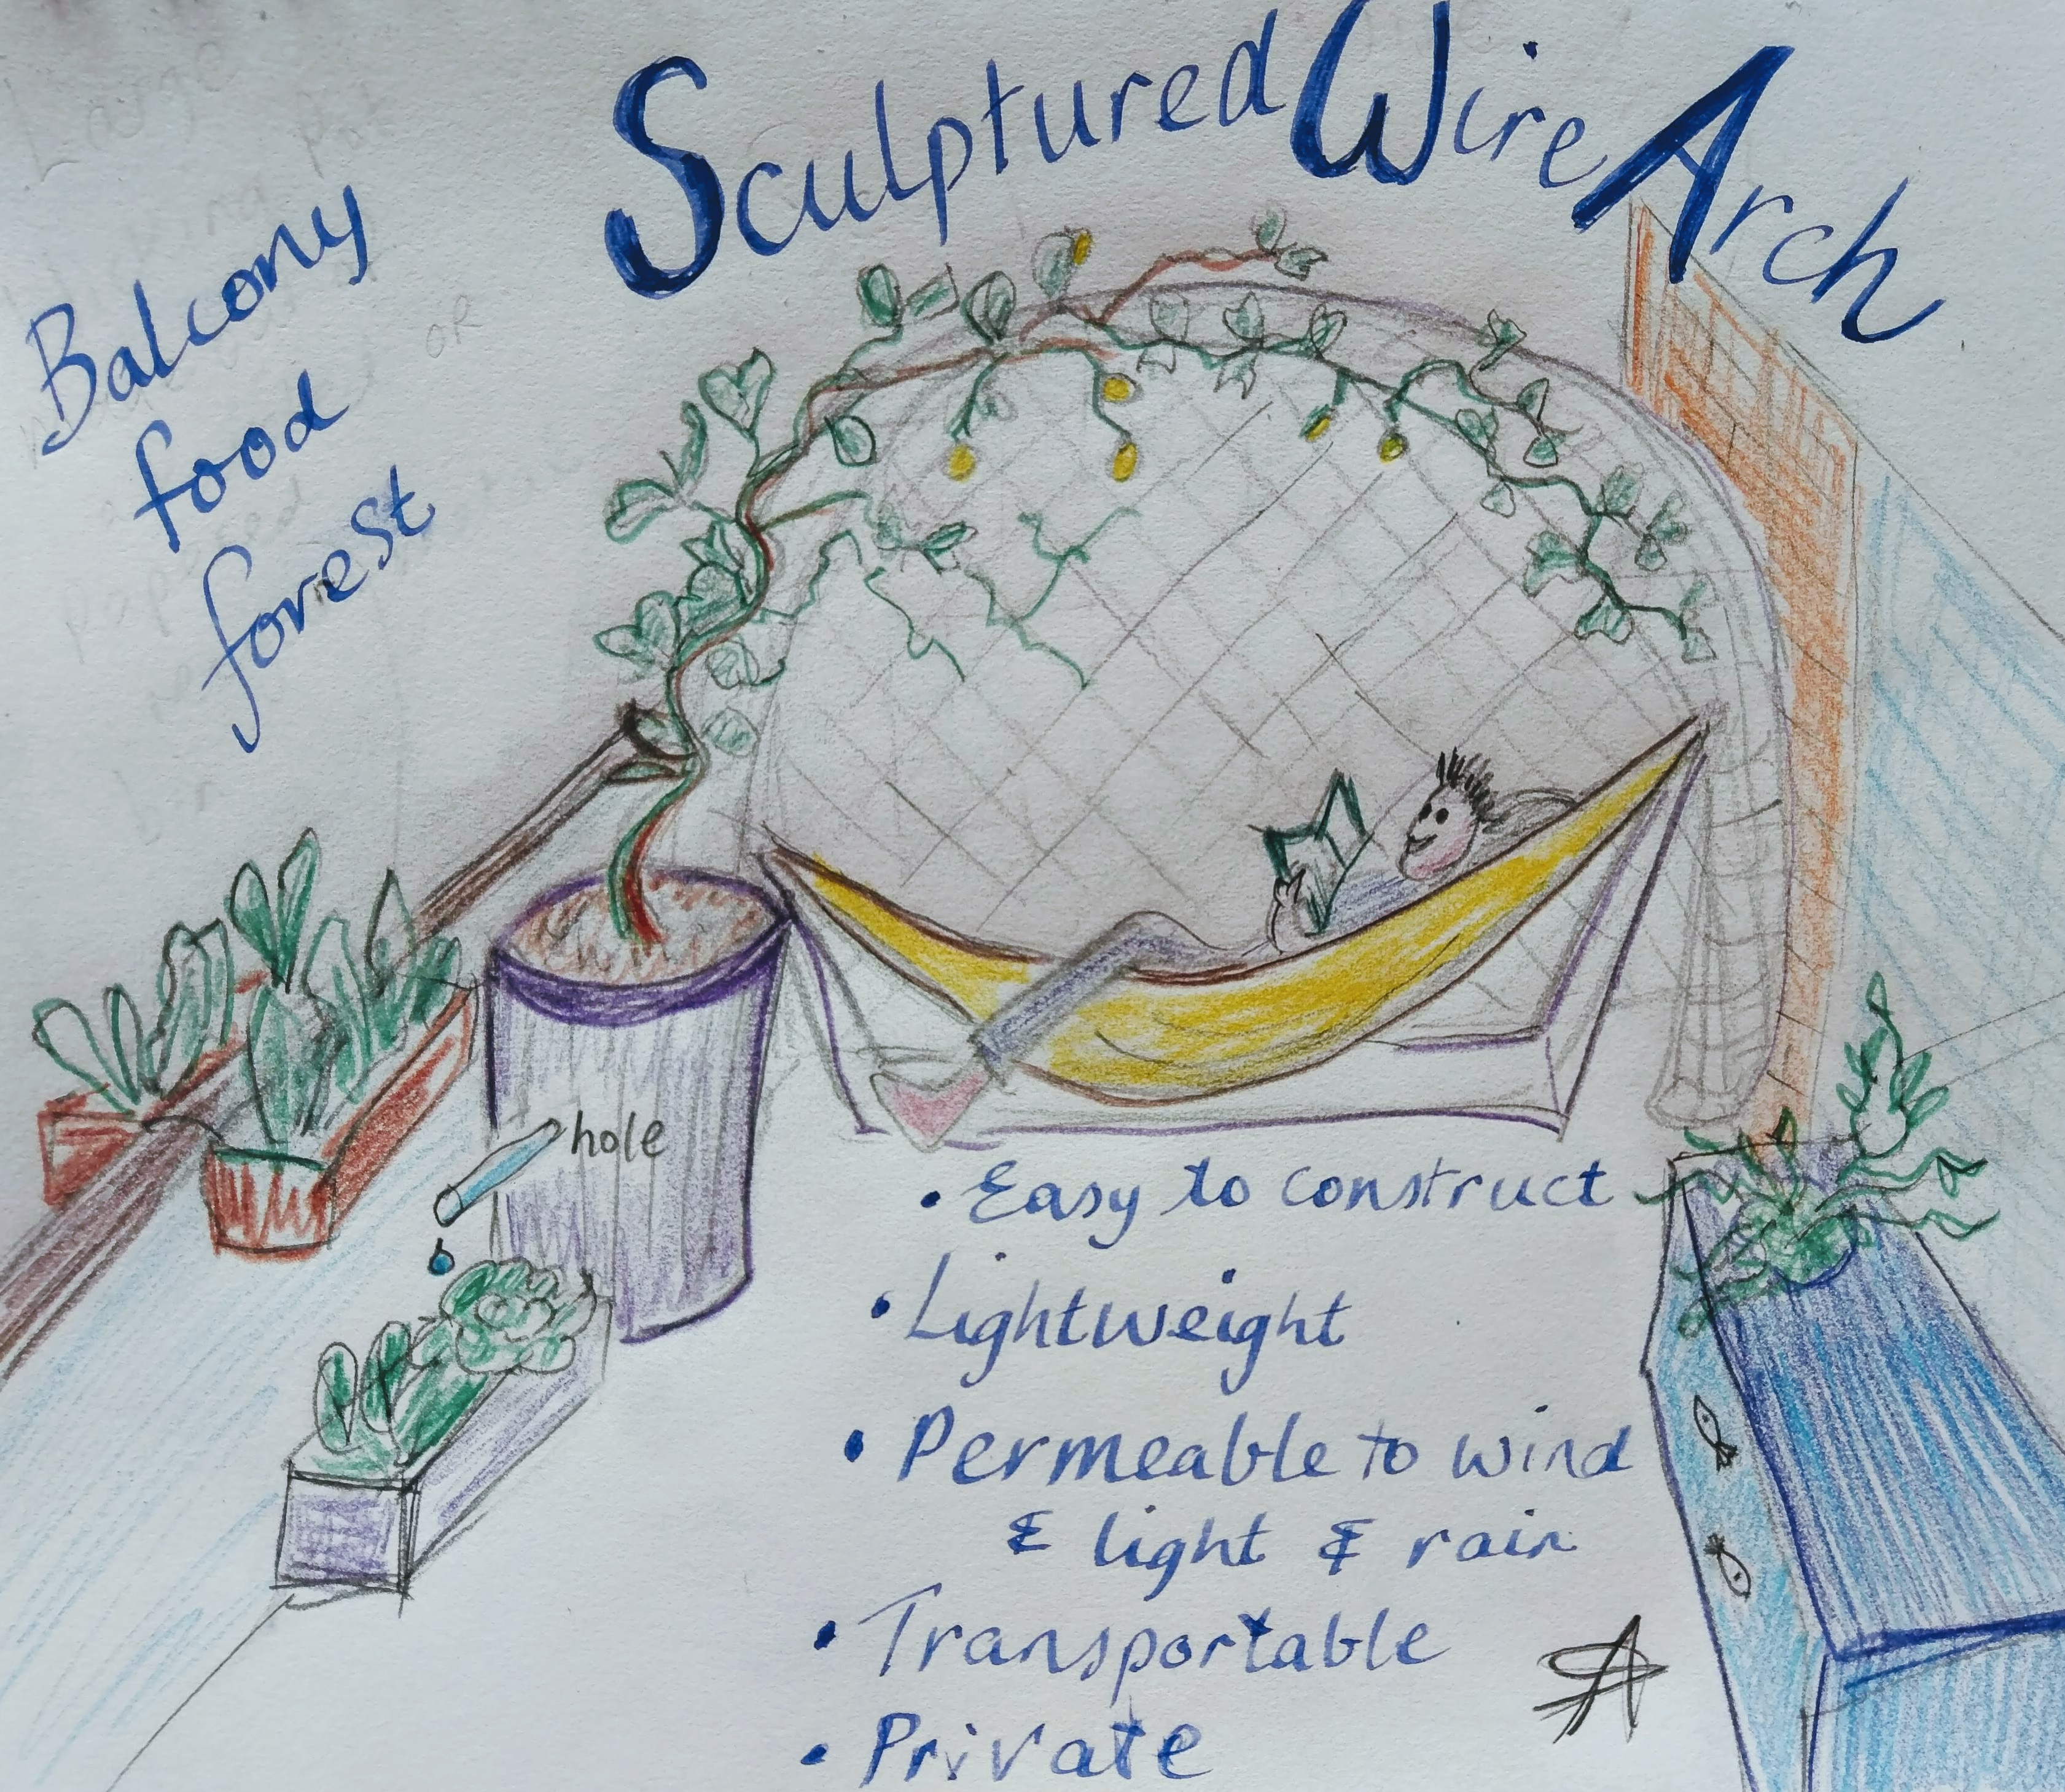 balcony design ideas, sculptured wire arch, wicking pots movable components, sectors analysis